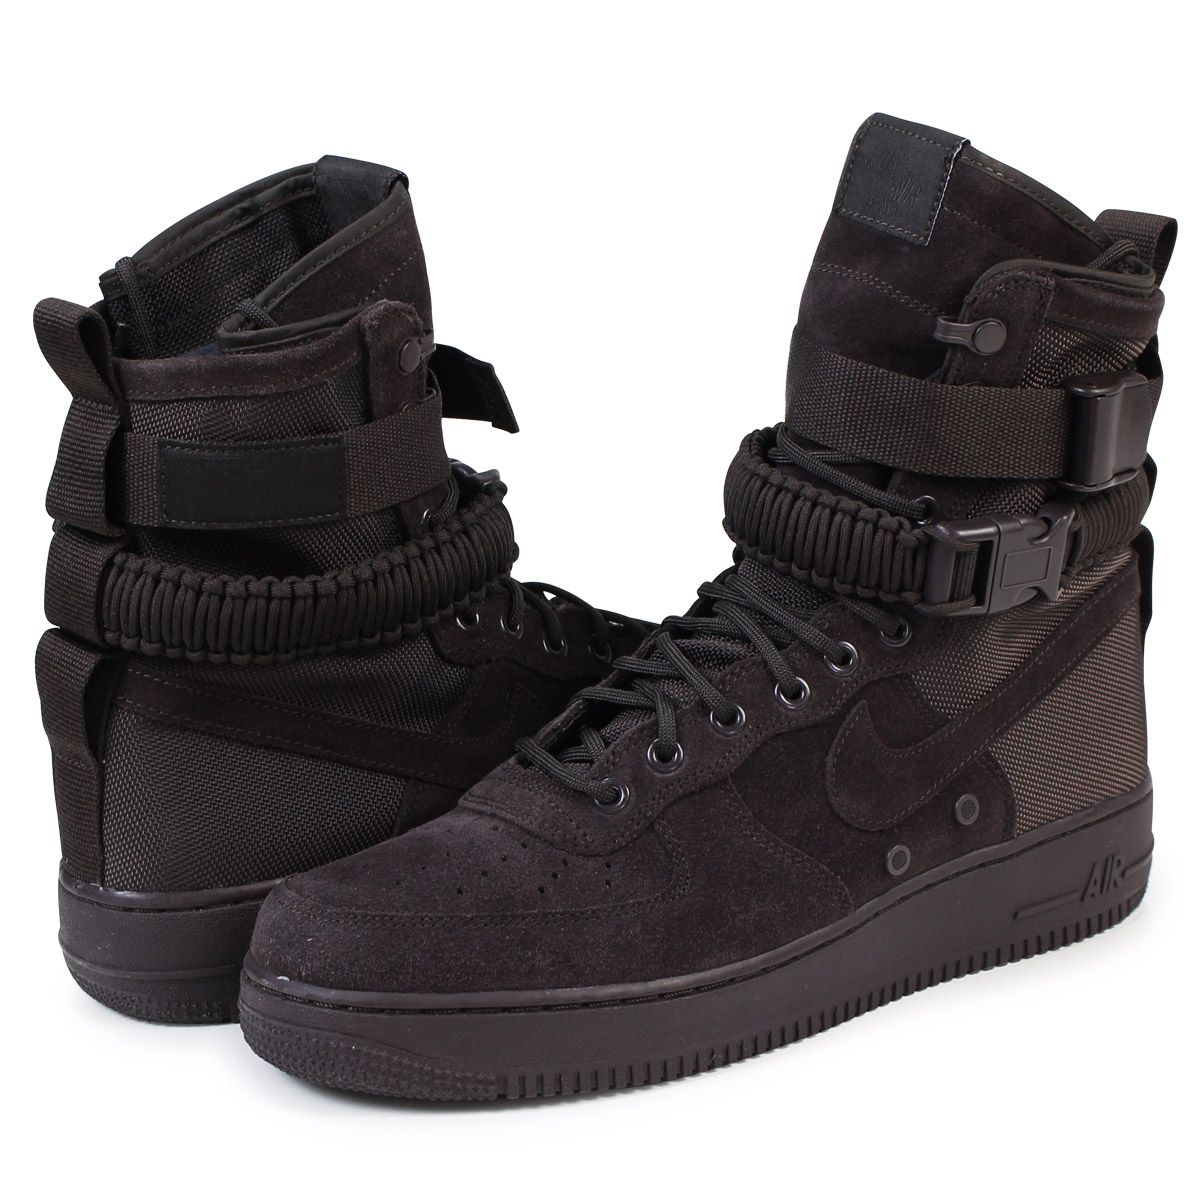 premium selection c28e2 5f711 NIKE SPECIAL FIELD AIR FORCE 1 Nike air force 1 high sneakers 864,024-203  men's shoes purple [load planned Shinnyu load in reservation product 9/29  ...